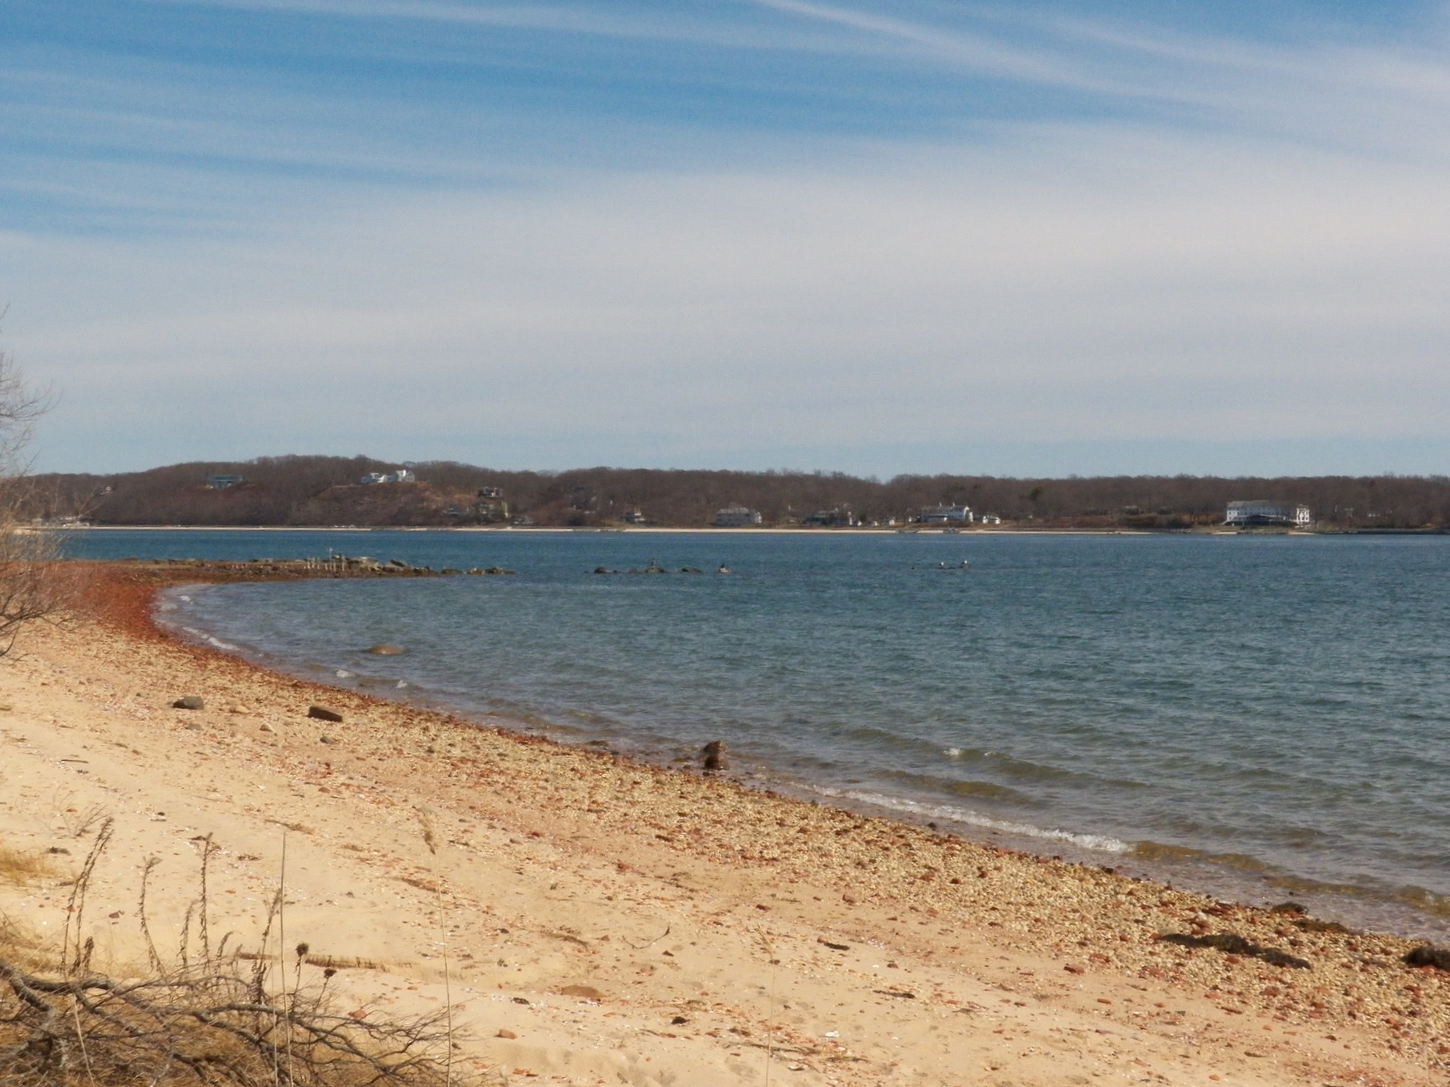 2 - Swim on our beach overlooking beautiful Shelter Island!